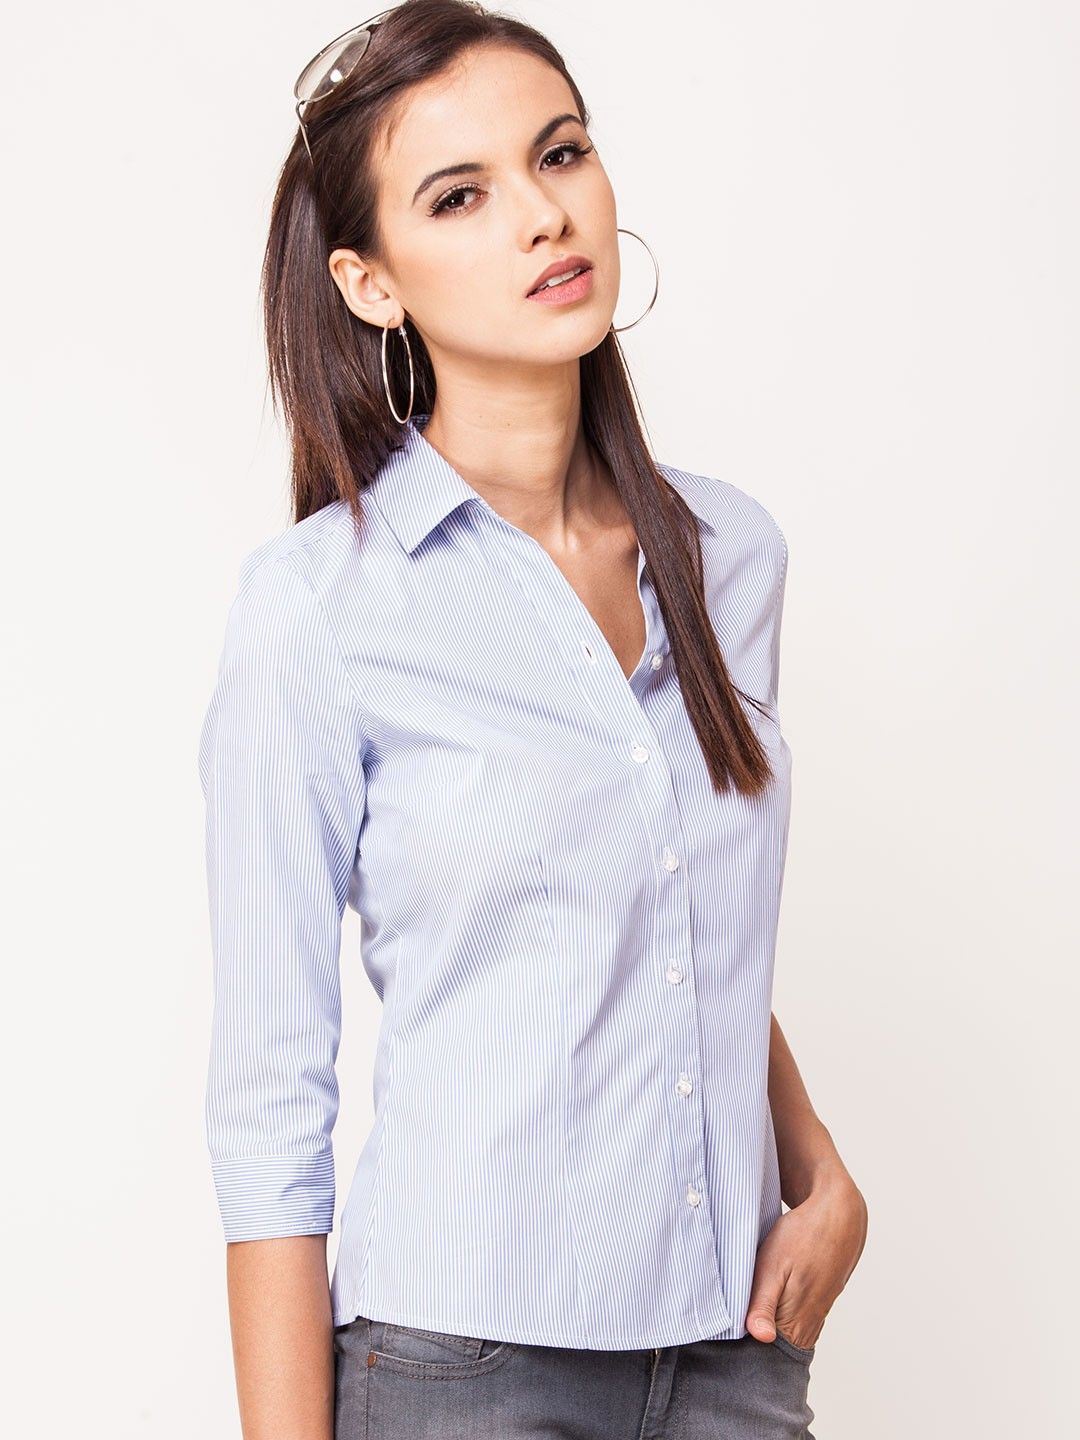 Allen Solly Formal Shirt With Pin Stripe - Buy Women s Formal Shirts online  in India  e89319028